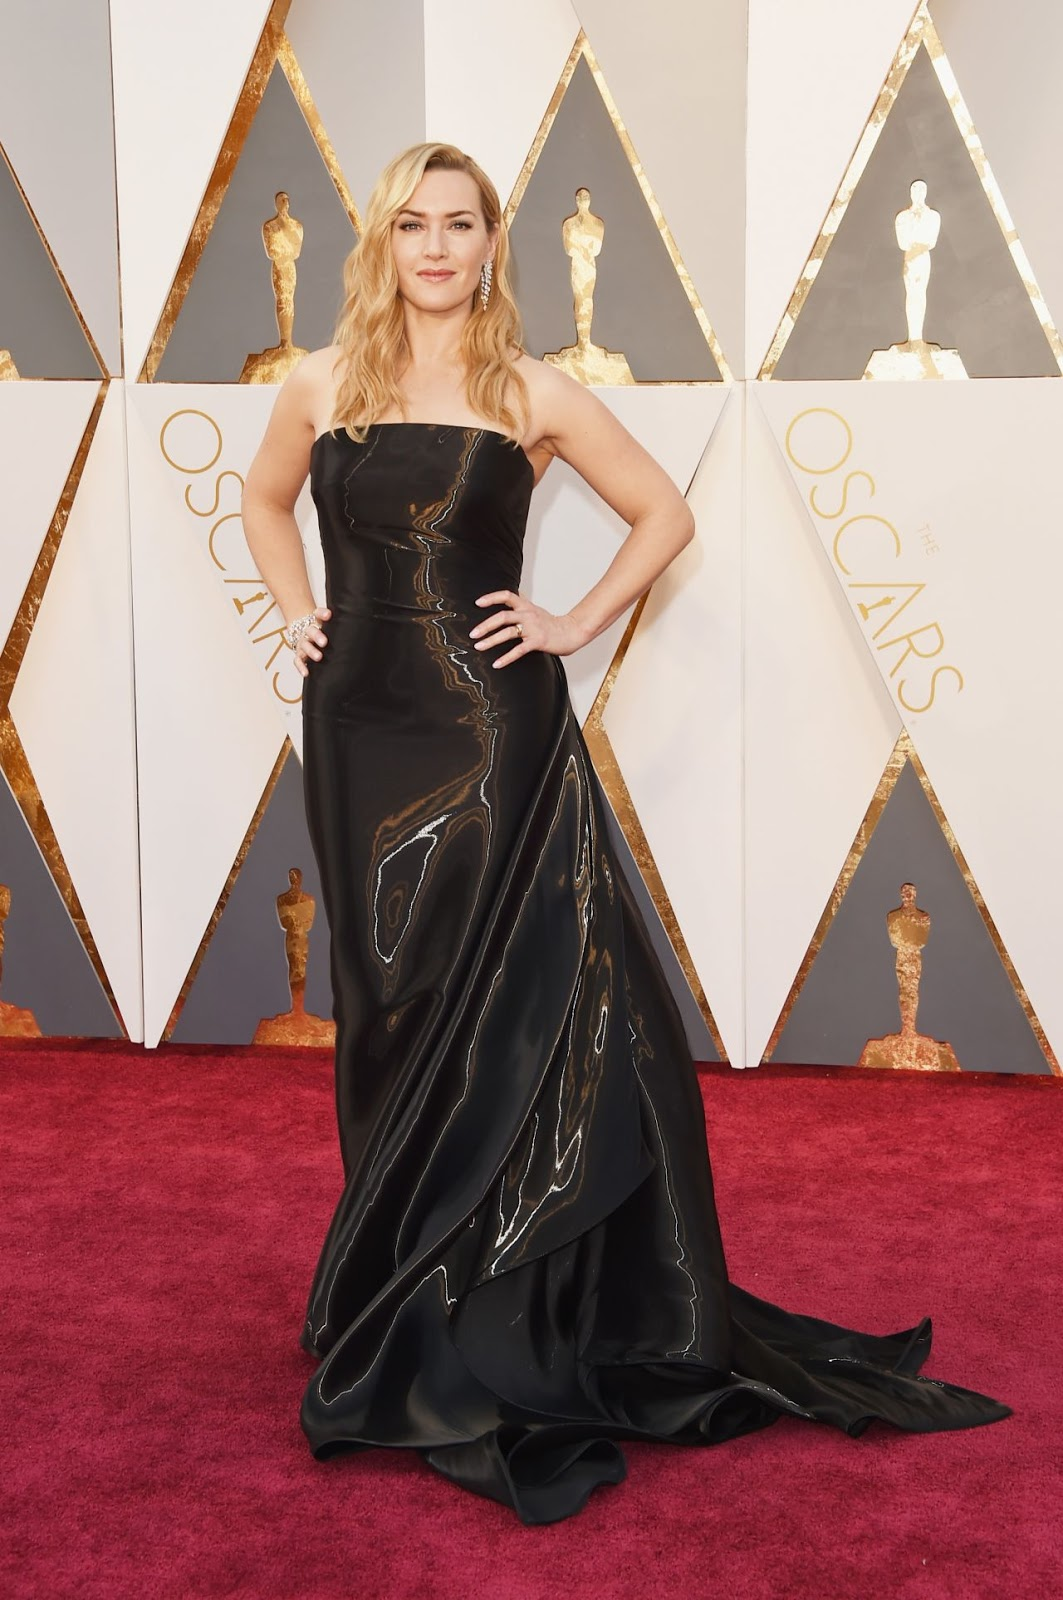 Kate Winslet wears Ralph Lauren to the Oscars 2016